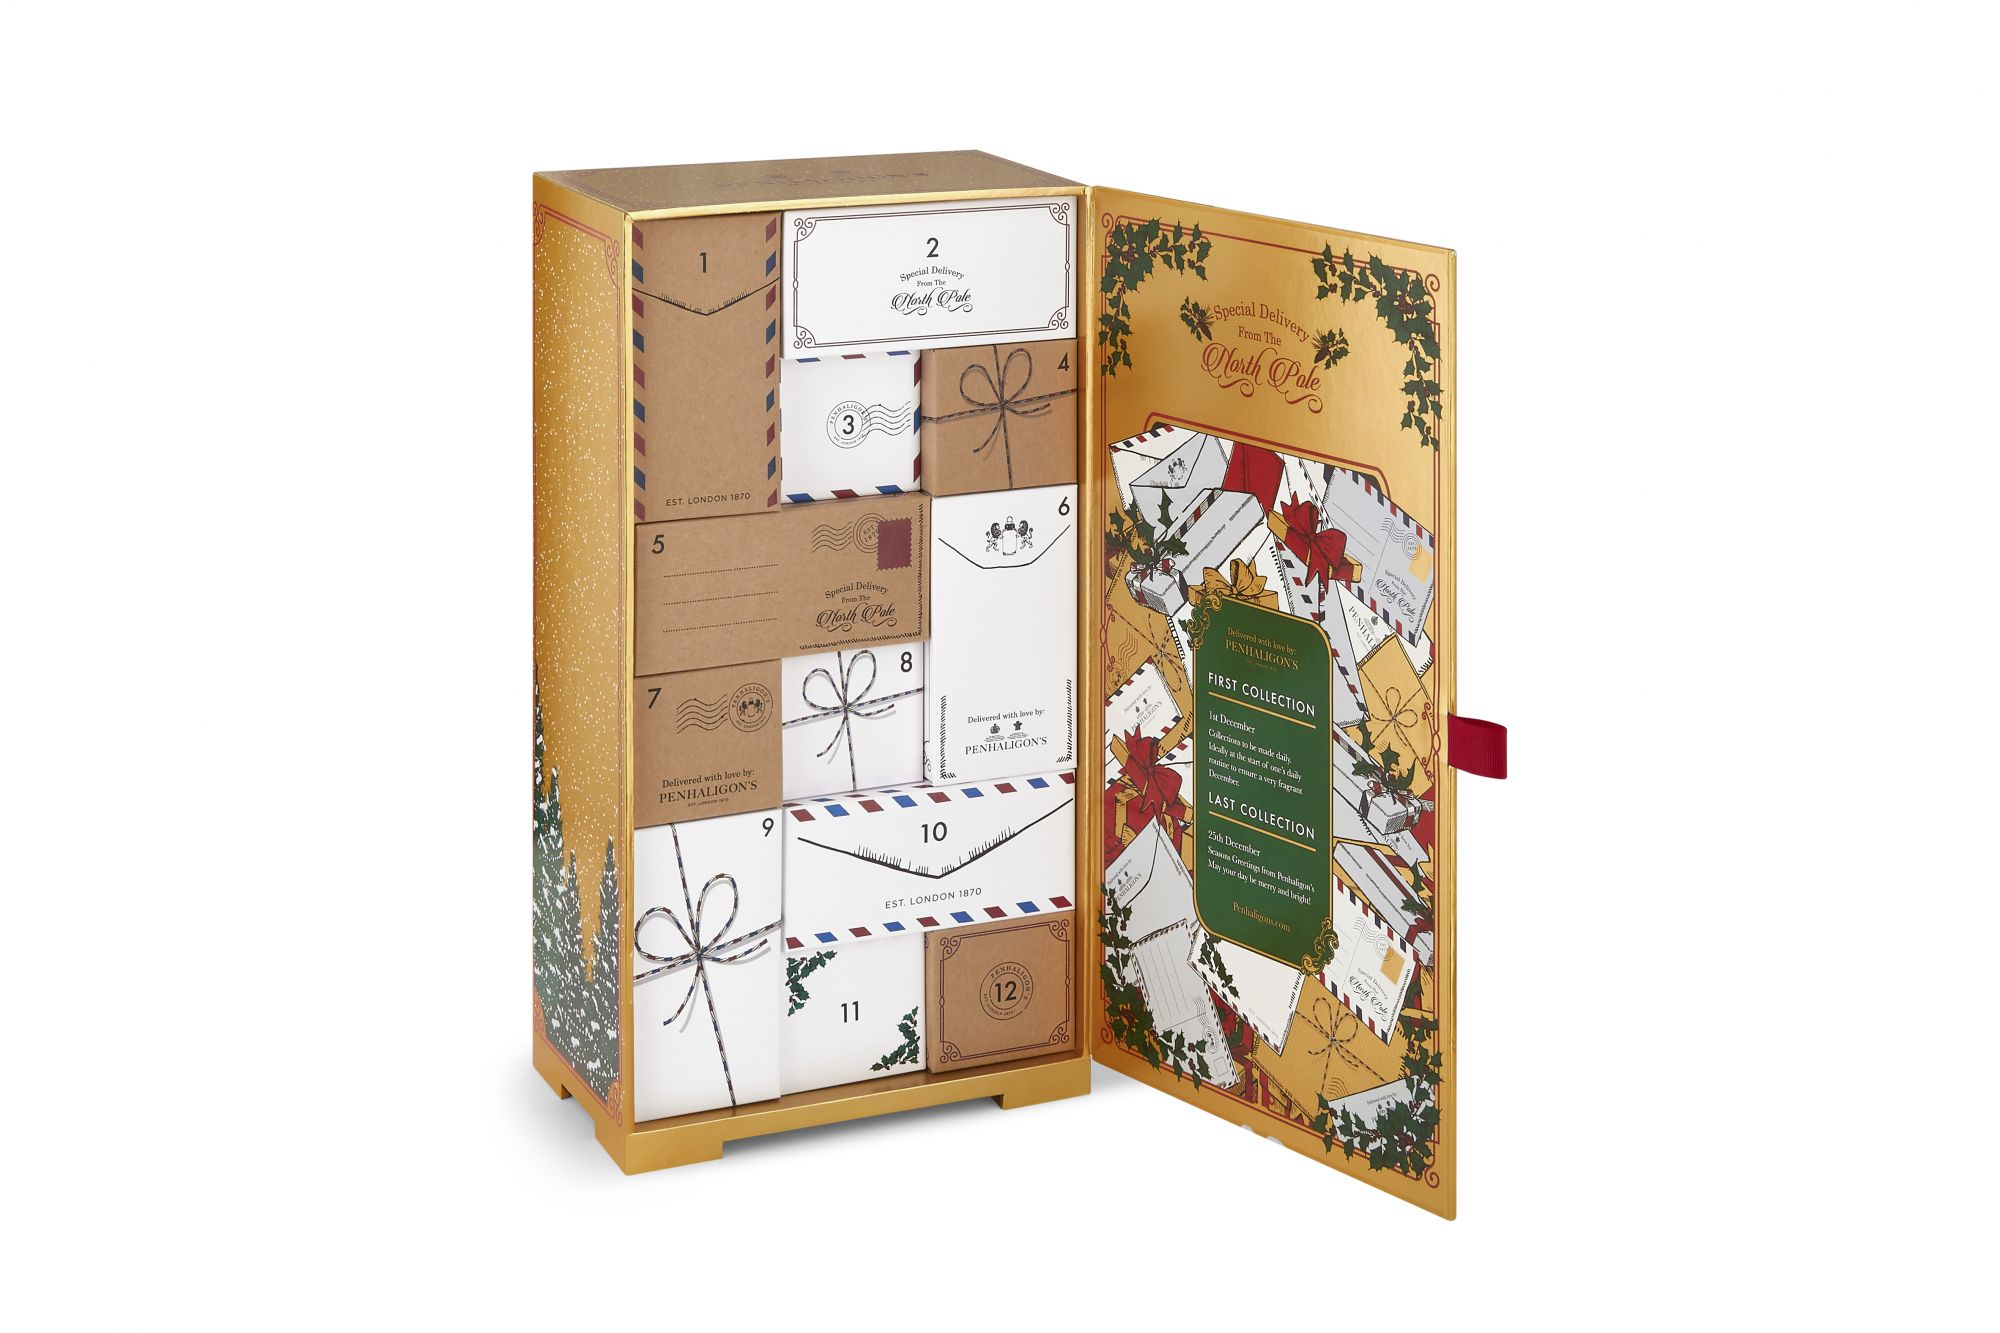 The Most Luxurious Advent Calendars For Christmas 2019 From Diptyque, Charlotte Tilbury, Tiffany & Co. And More